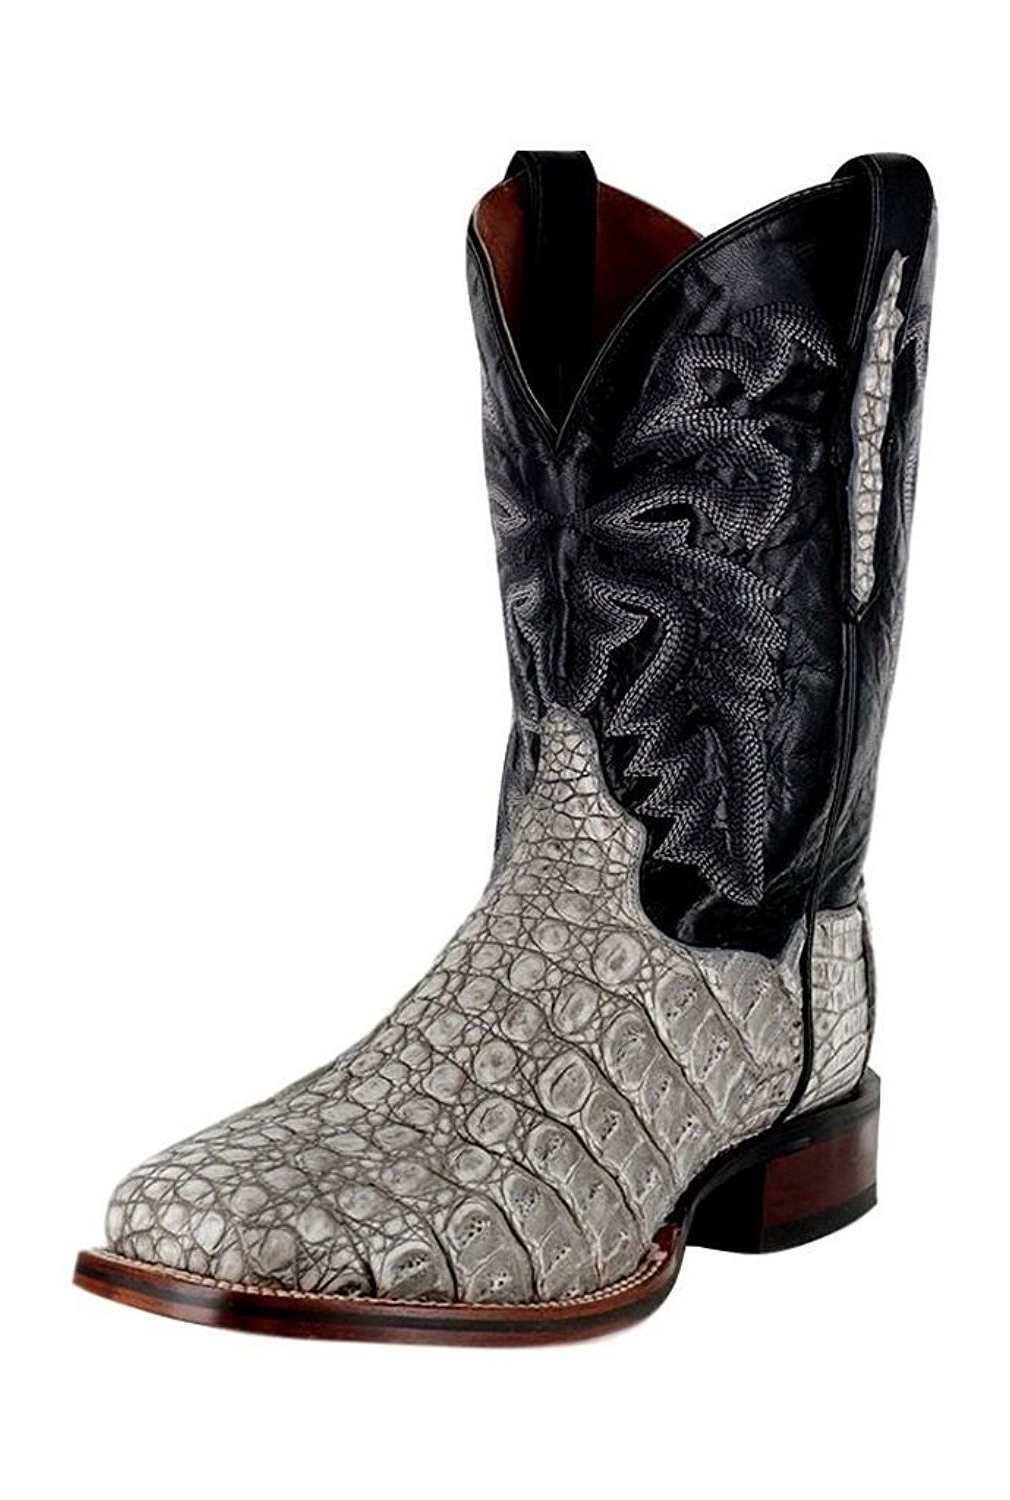 Dan Post Men's Denver Caiman Embroidery Cowboy Square Toe Boots Grey Leather 8 EW by DAN POST